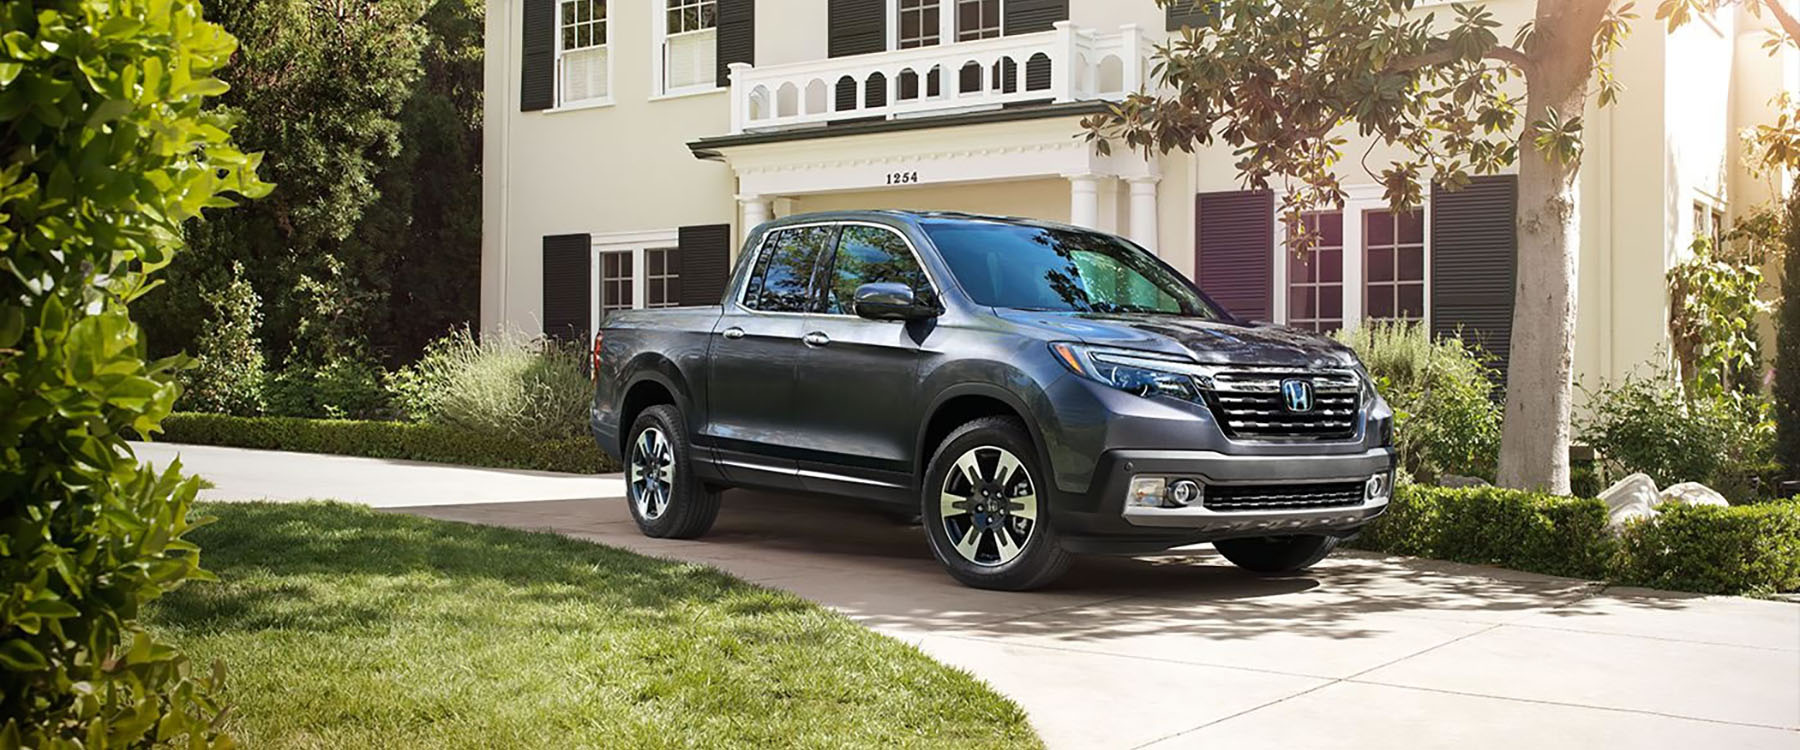 Detroit drivers in the market for a new truck, you need to see the 2017 Honda  Ridgeline performance and towing specs before you make any final decisions.